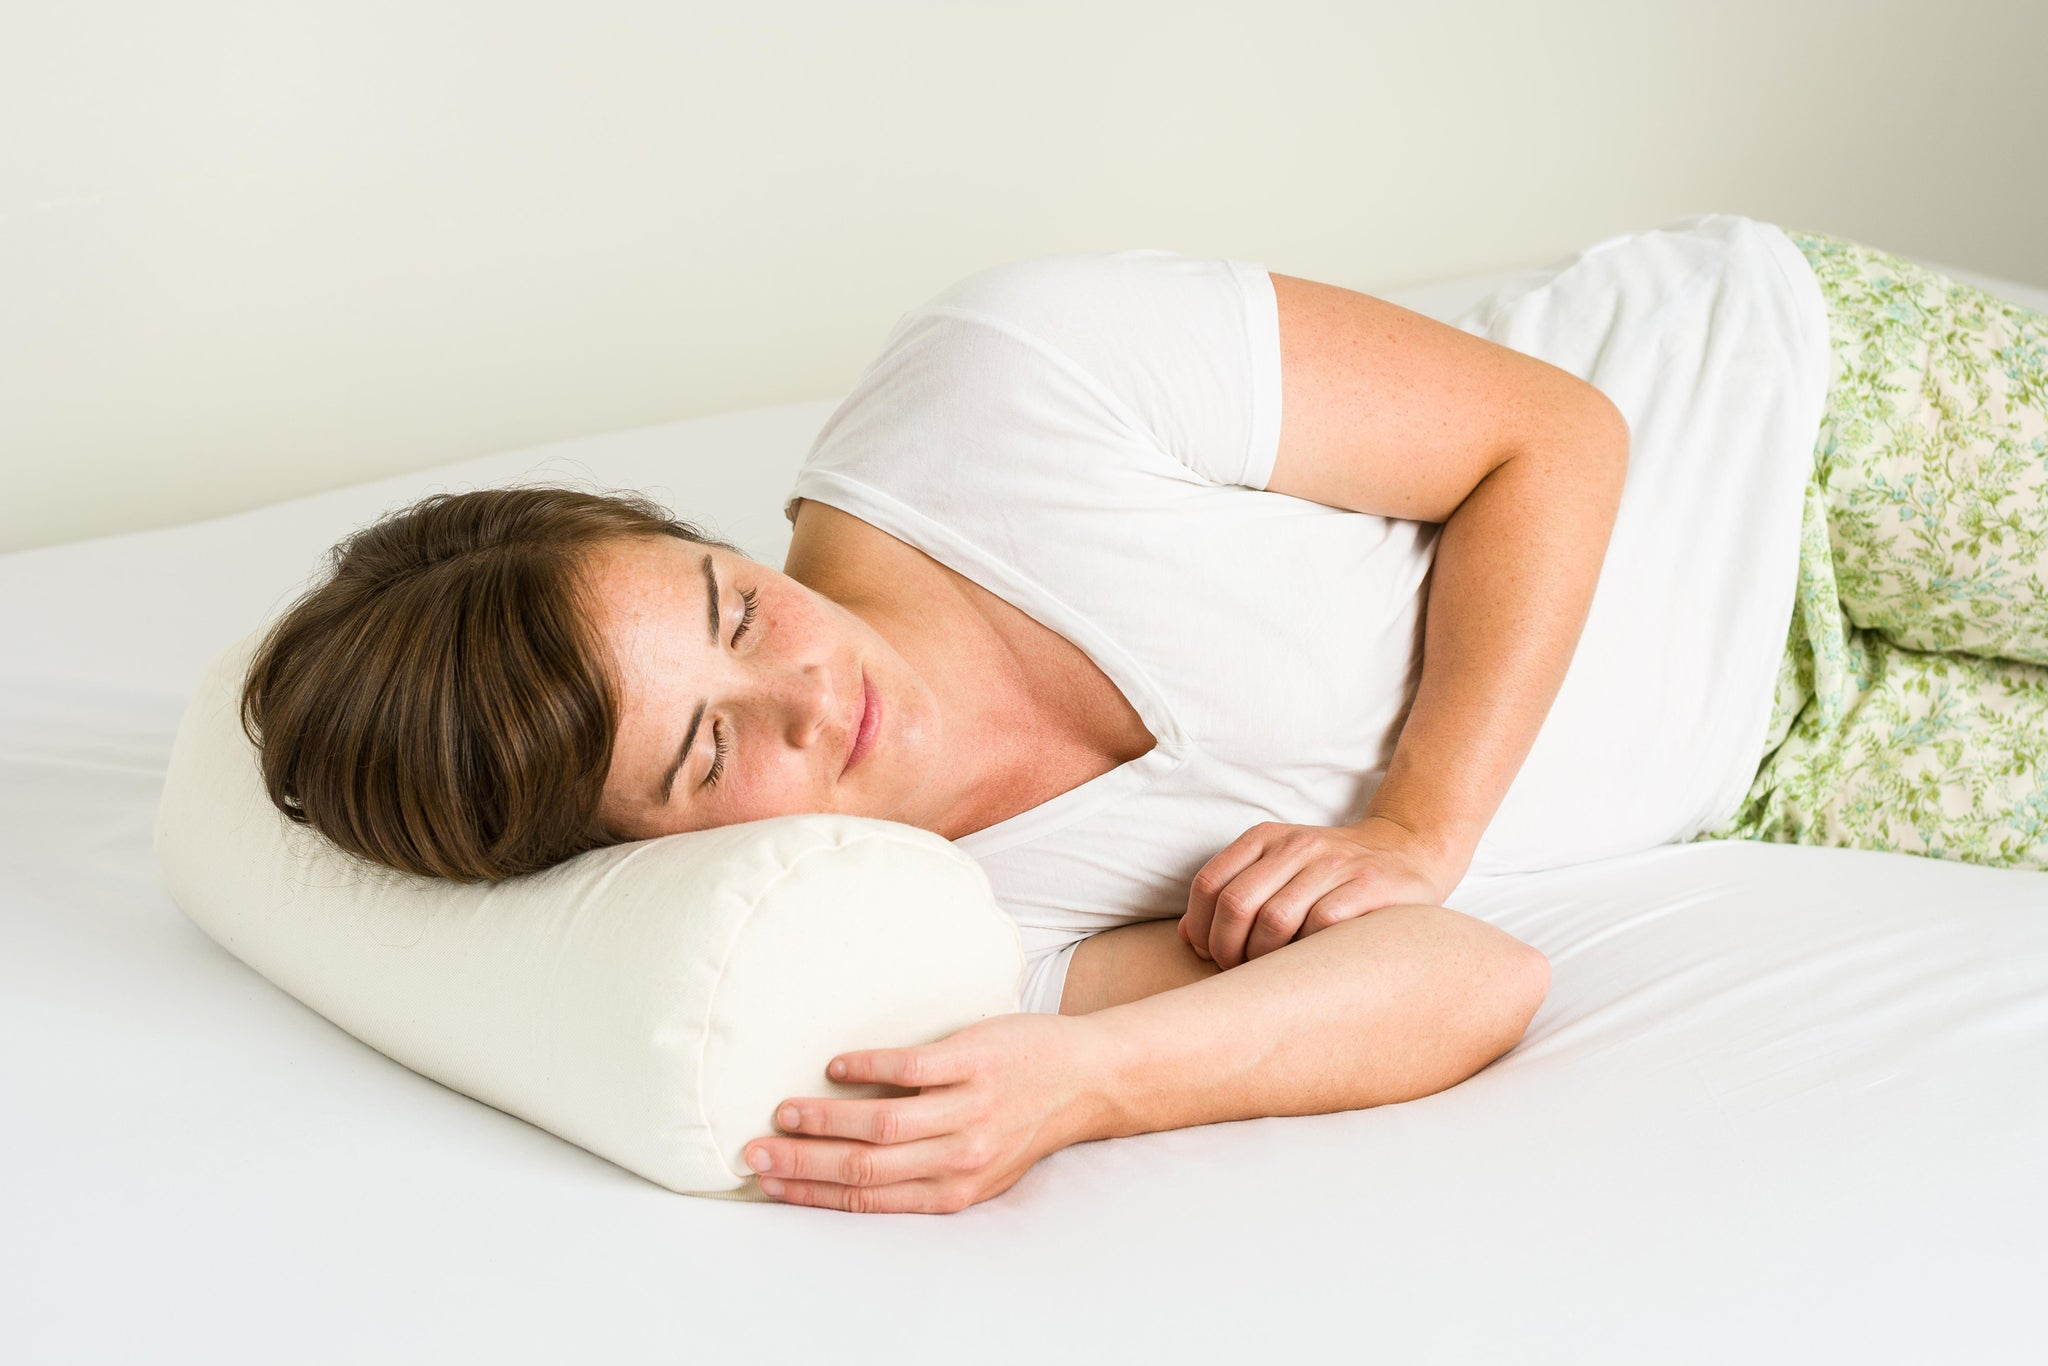 ComfyNeck Plus + Pillowcase - Organic Buckwheat Hull Cervical Neck Roll Pillow